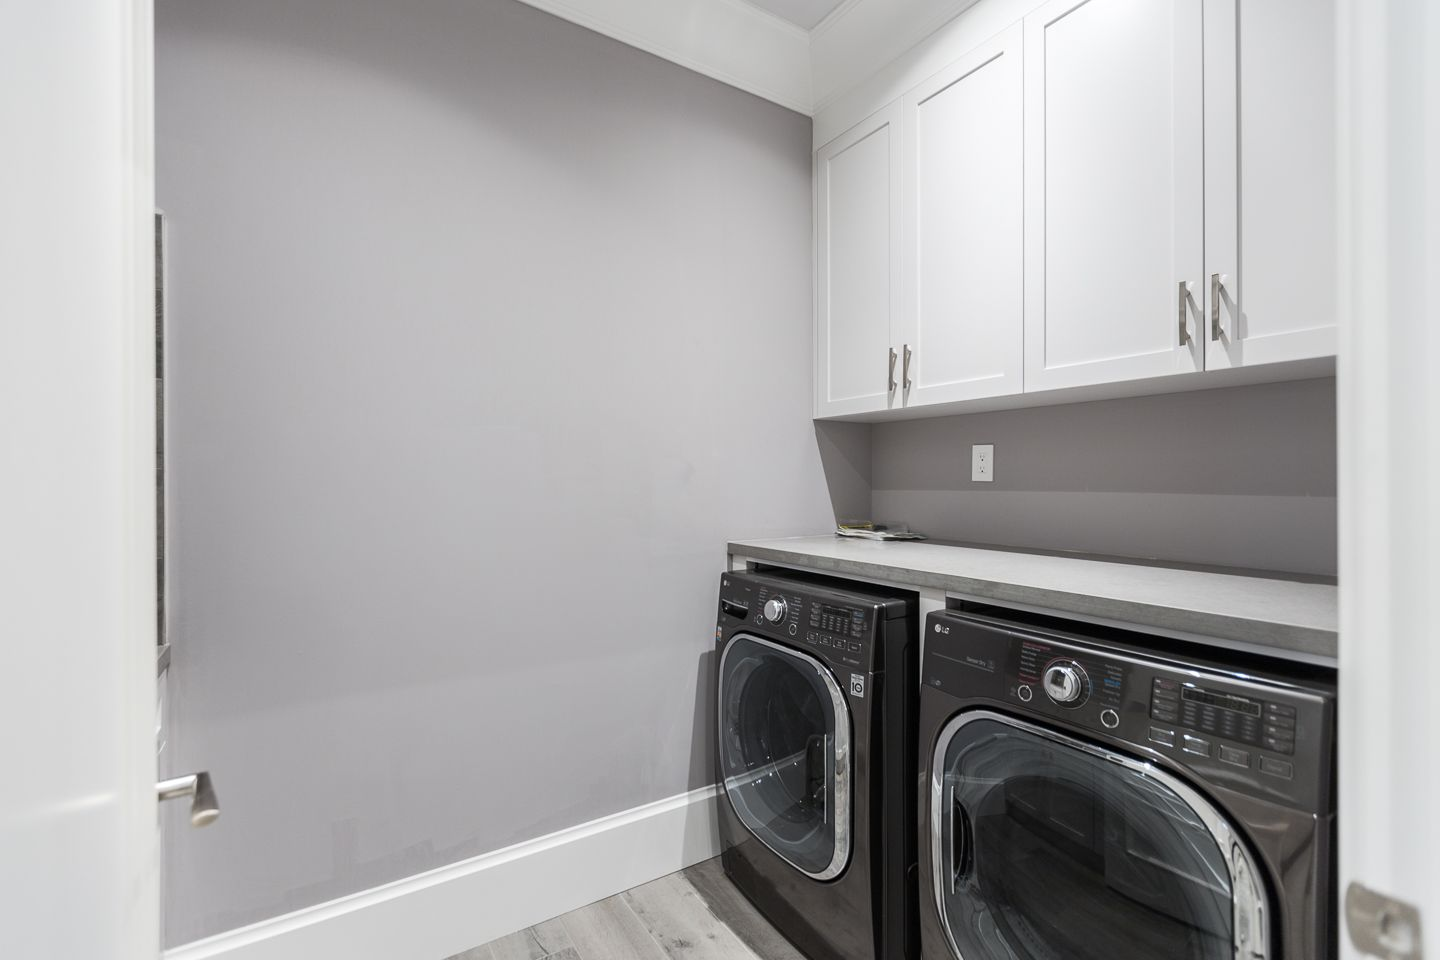 Photo 39: Photos: 1744 WEST 61ST AVE in VANCOUVER: South Granville House for sale (Vancouver West)  : MLS®# R2546980